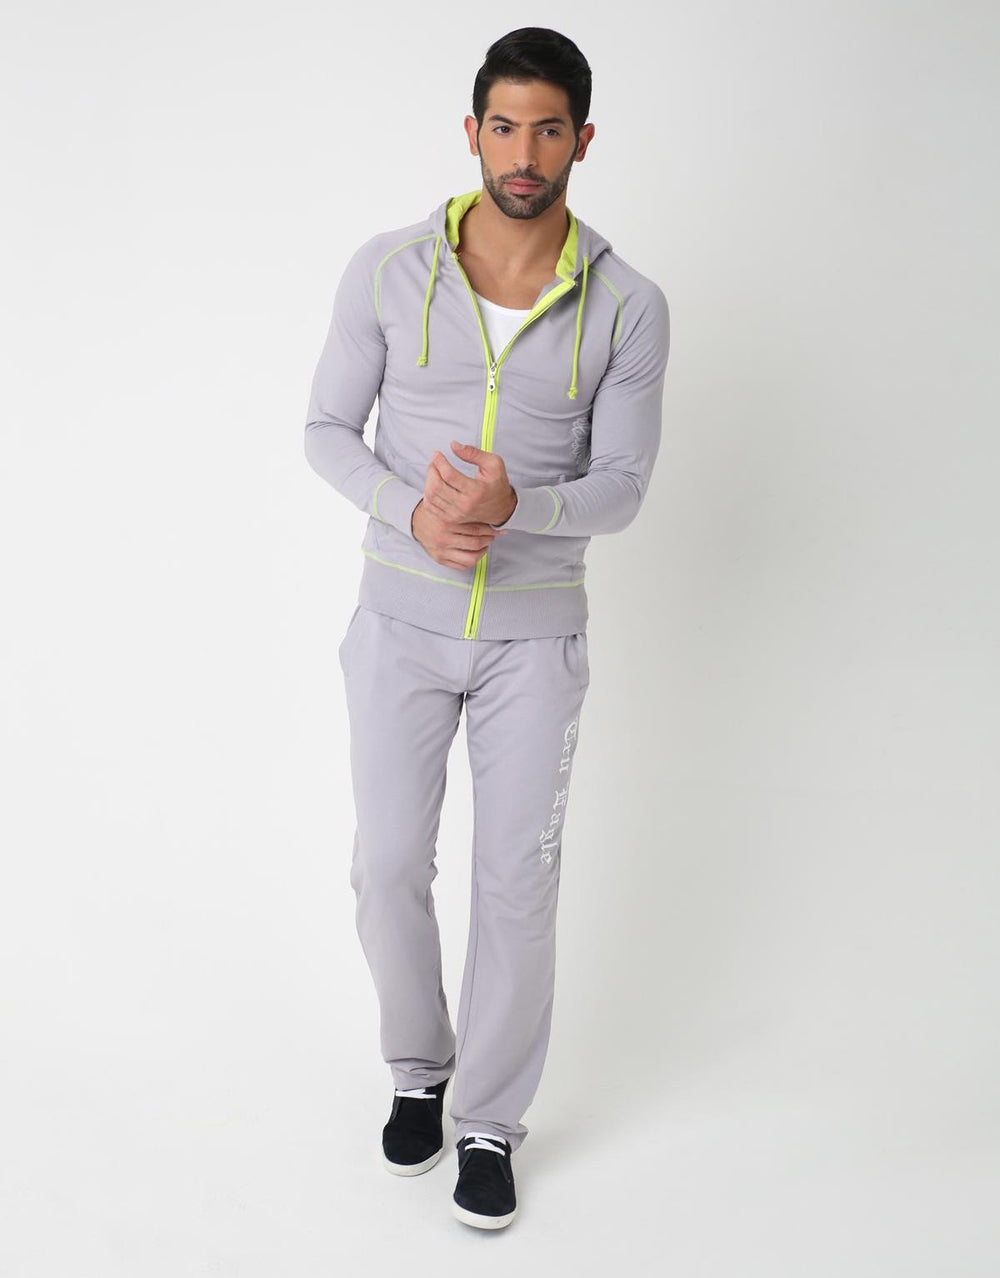 Tri Color Sweatpants for Men